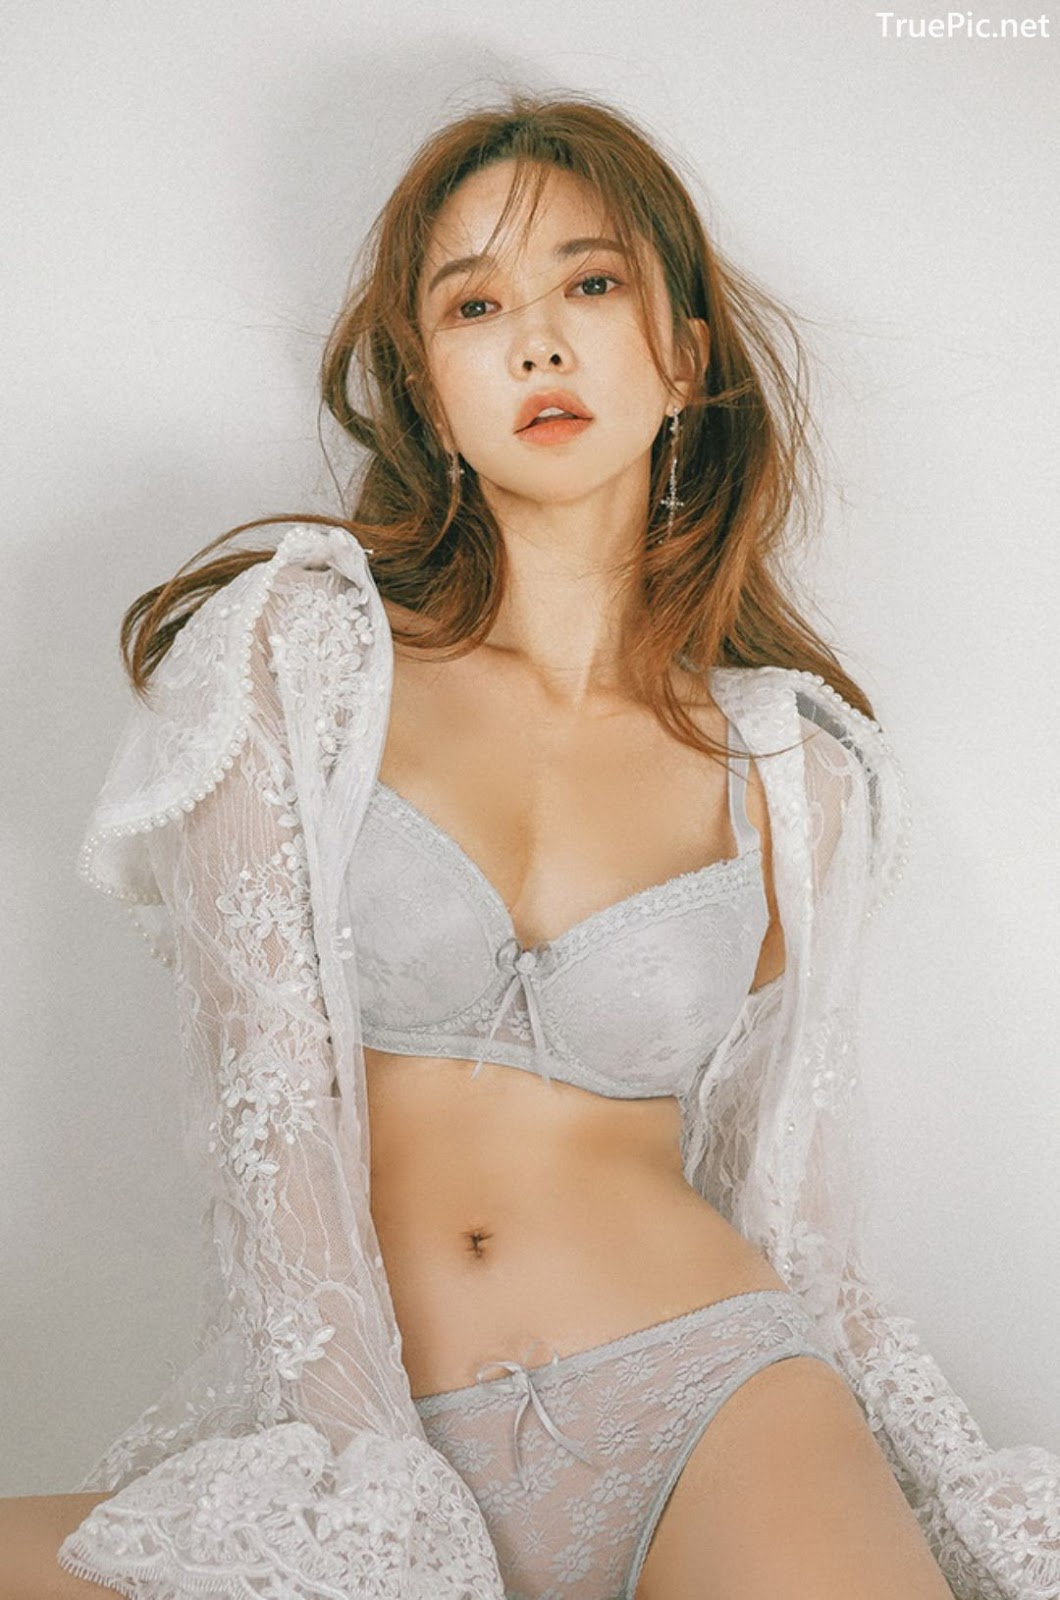 Image Korean Fashion Model - Park Soo Yeon - Light Grey and White Lingerie - TruePic.net - Picture-7